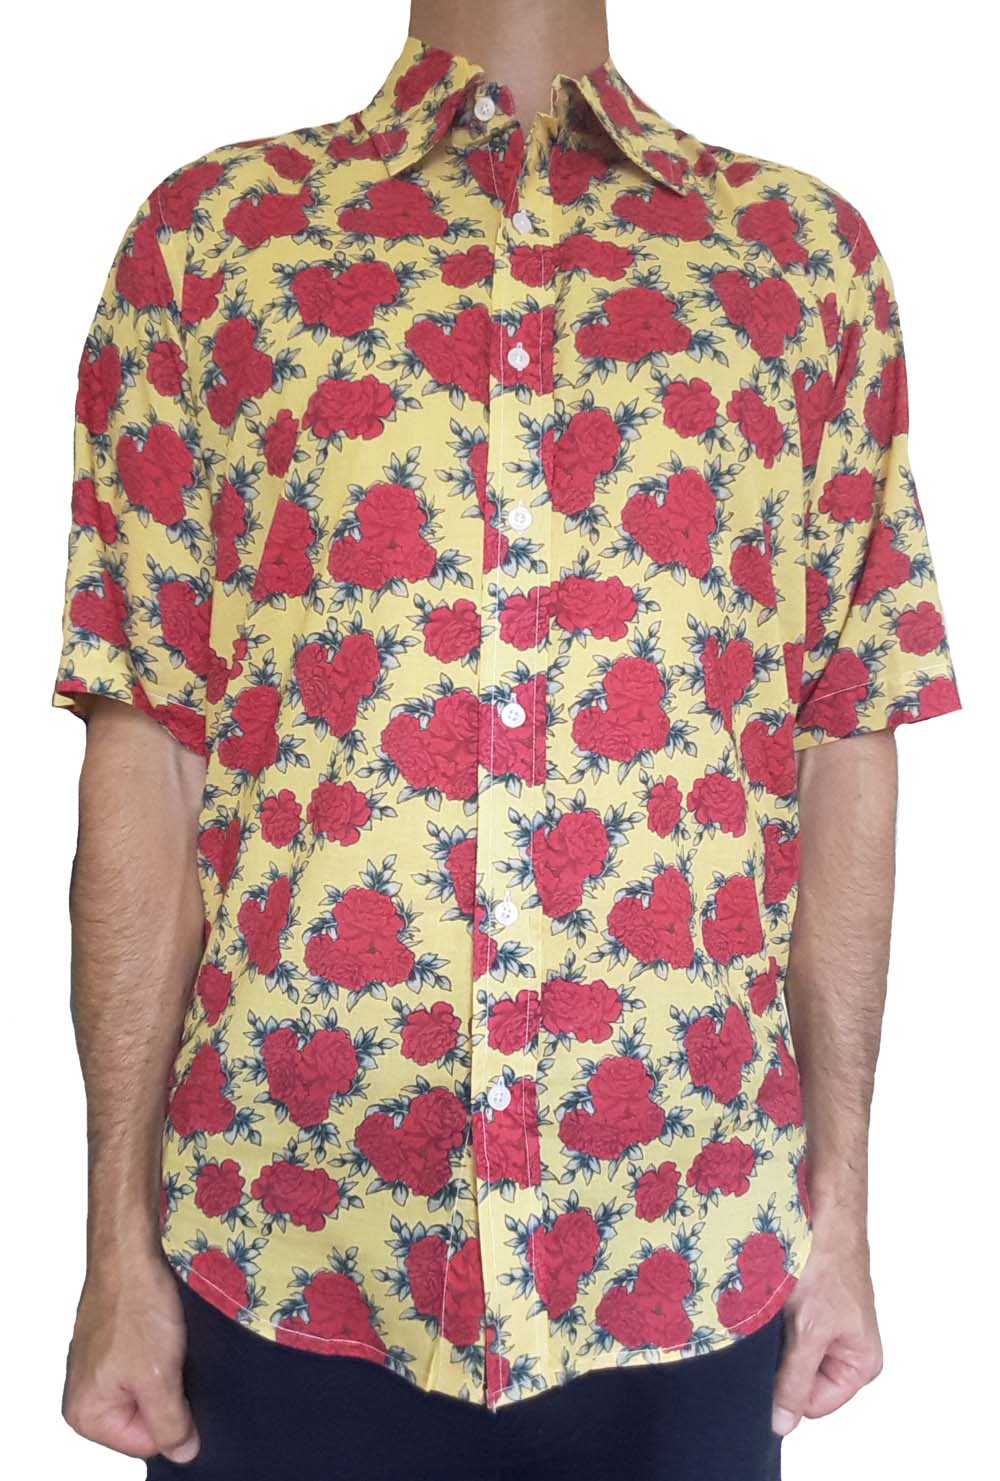 Bent Banani Men's, 100% Cotton, Short Sleeve, Floral Shirt - Red Flowers On Yellow